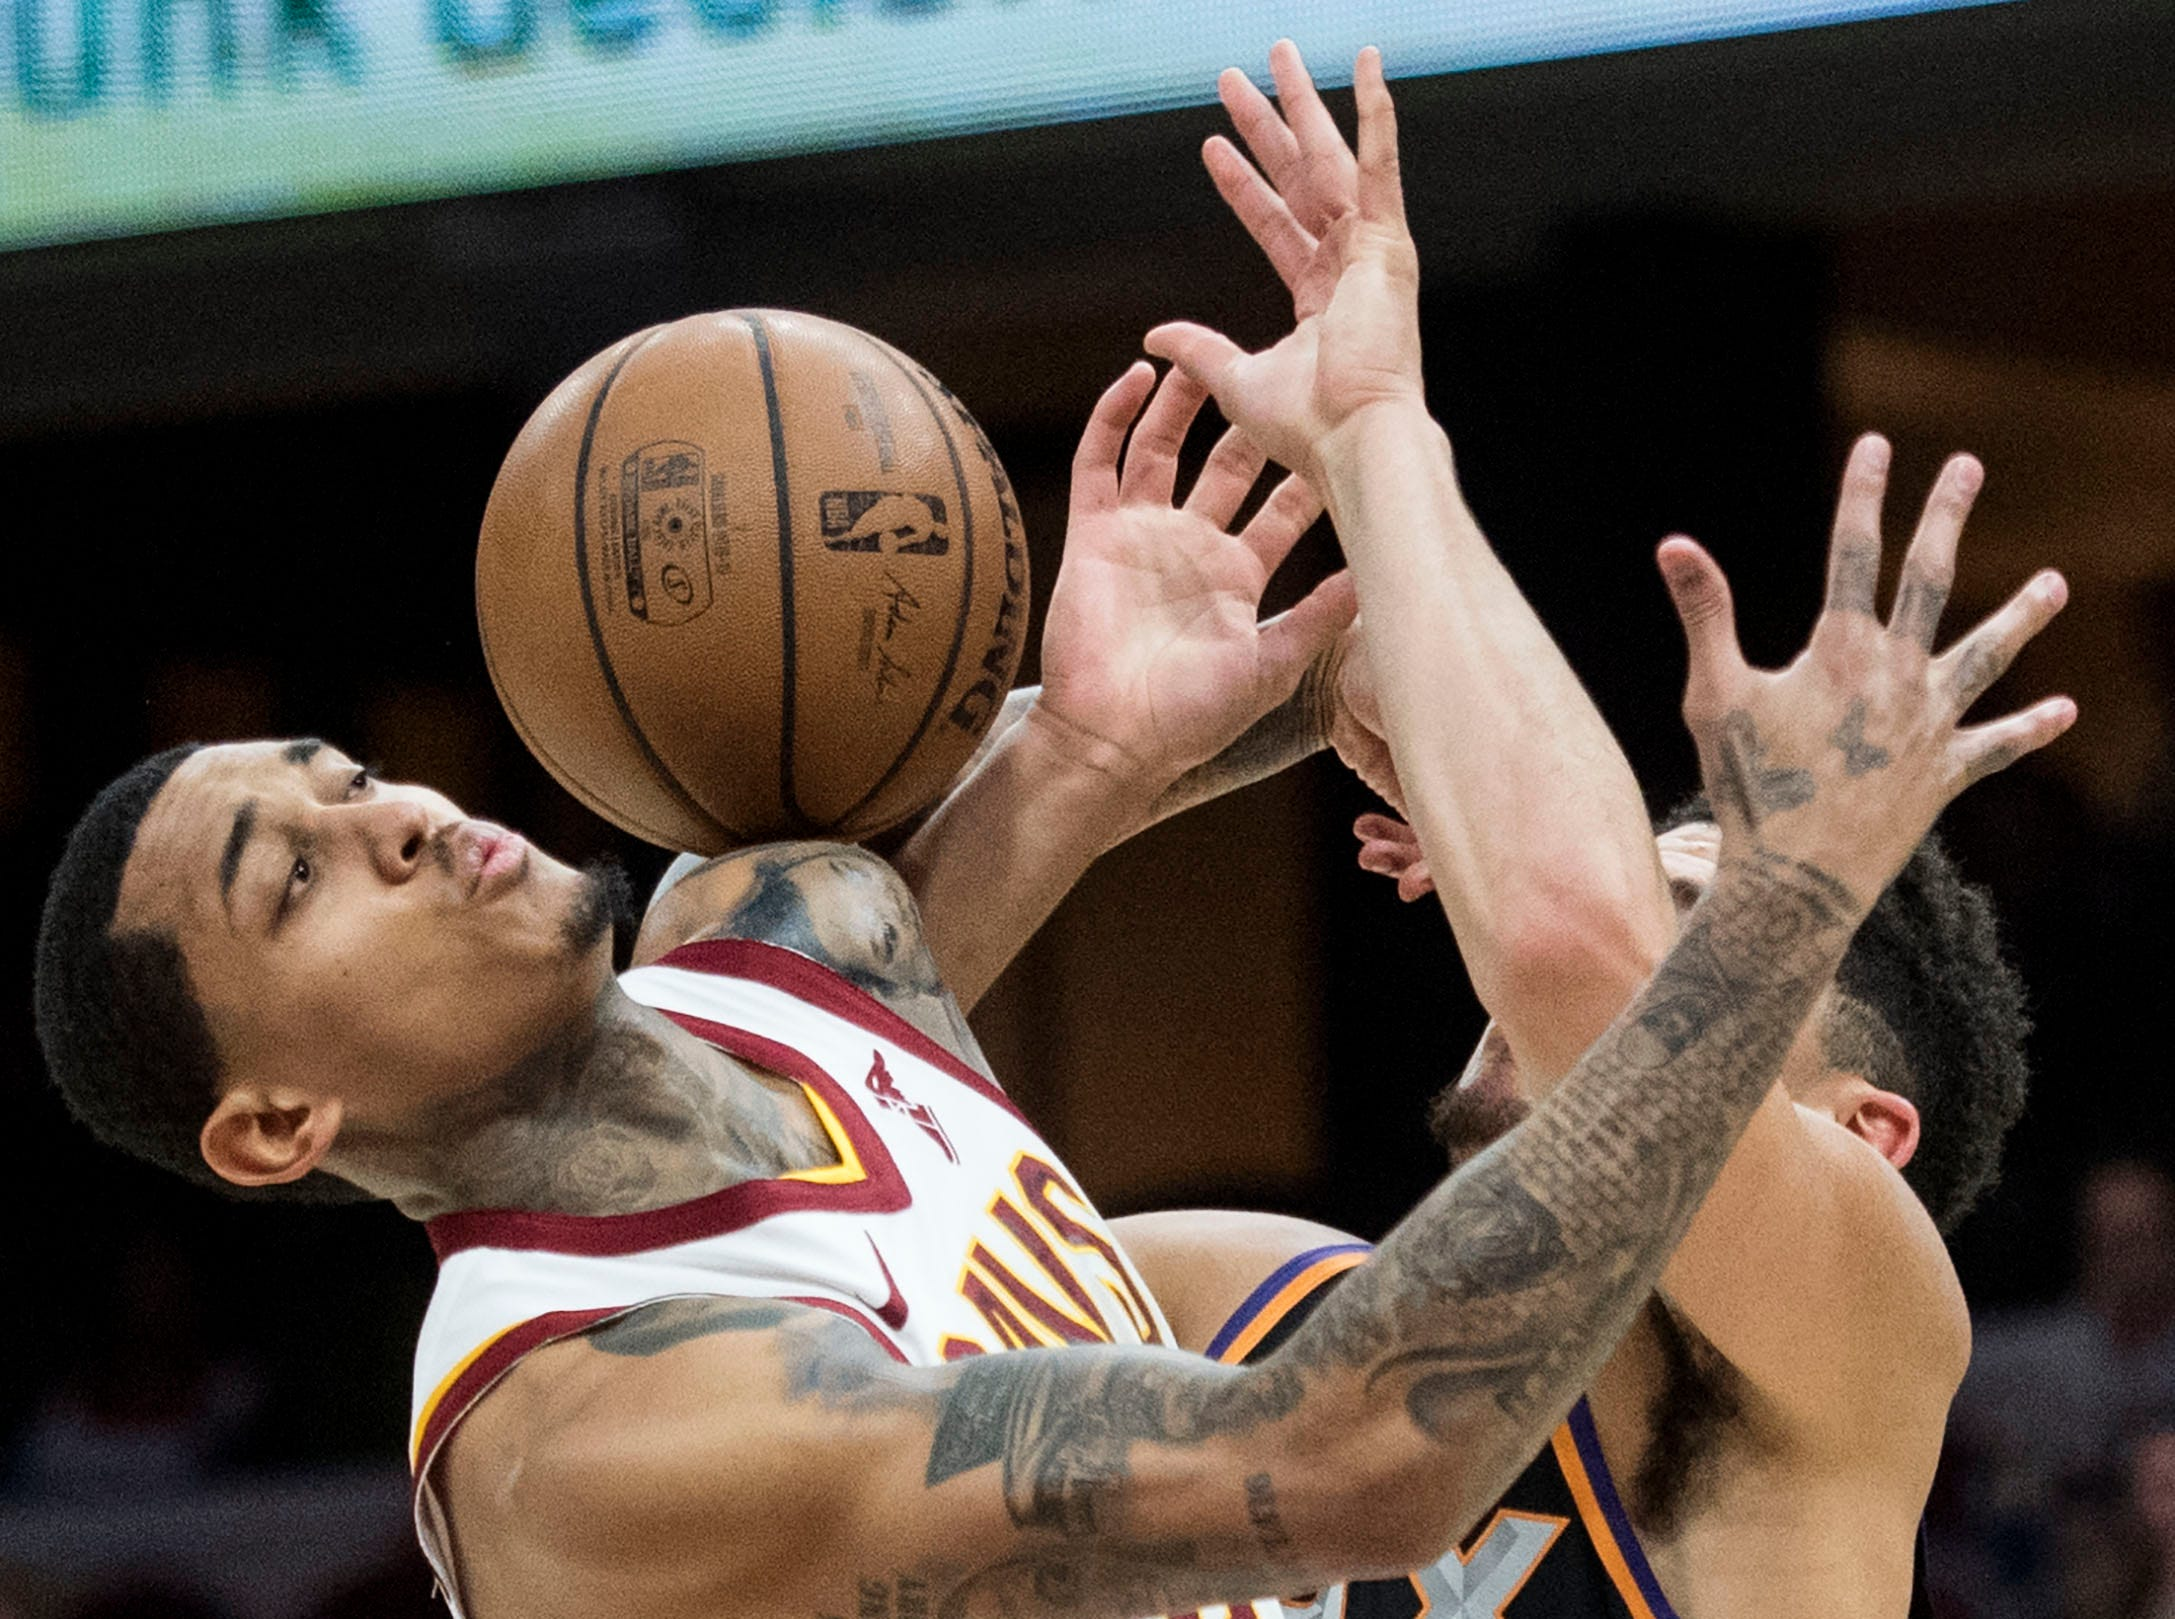 Feb 21, 2019; Cleveland, OH, USA; Cleveland Cavaliers guard Jordan Clarkson (8) and Phoenix Suns guard Devin Booker (1) battle for a loose ball during the first half at Quicken Loans Arena. Mandatory Credit: Ken Blaze-USA TODAY Sports